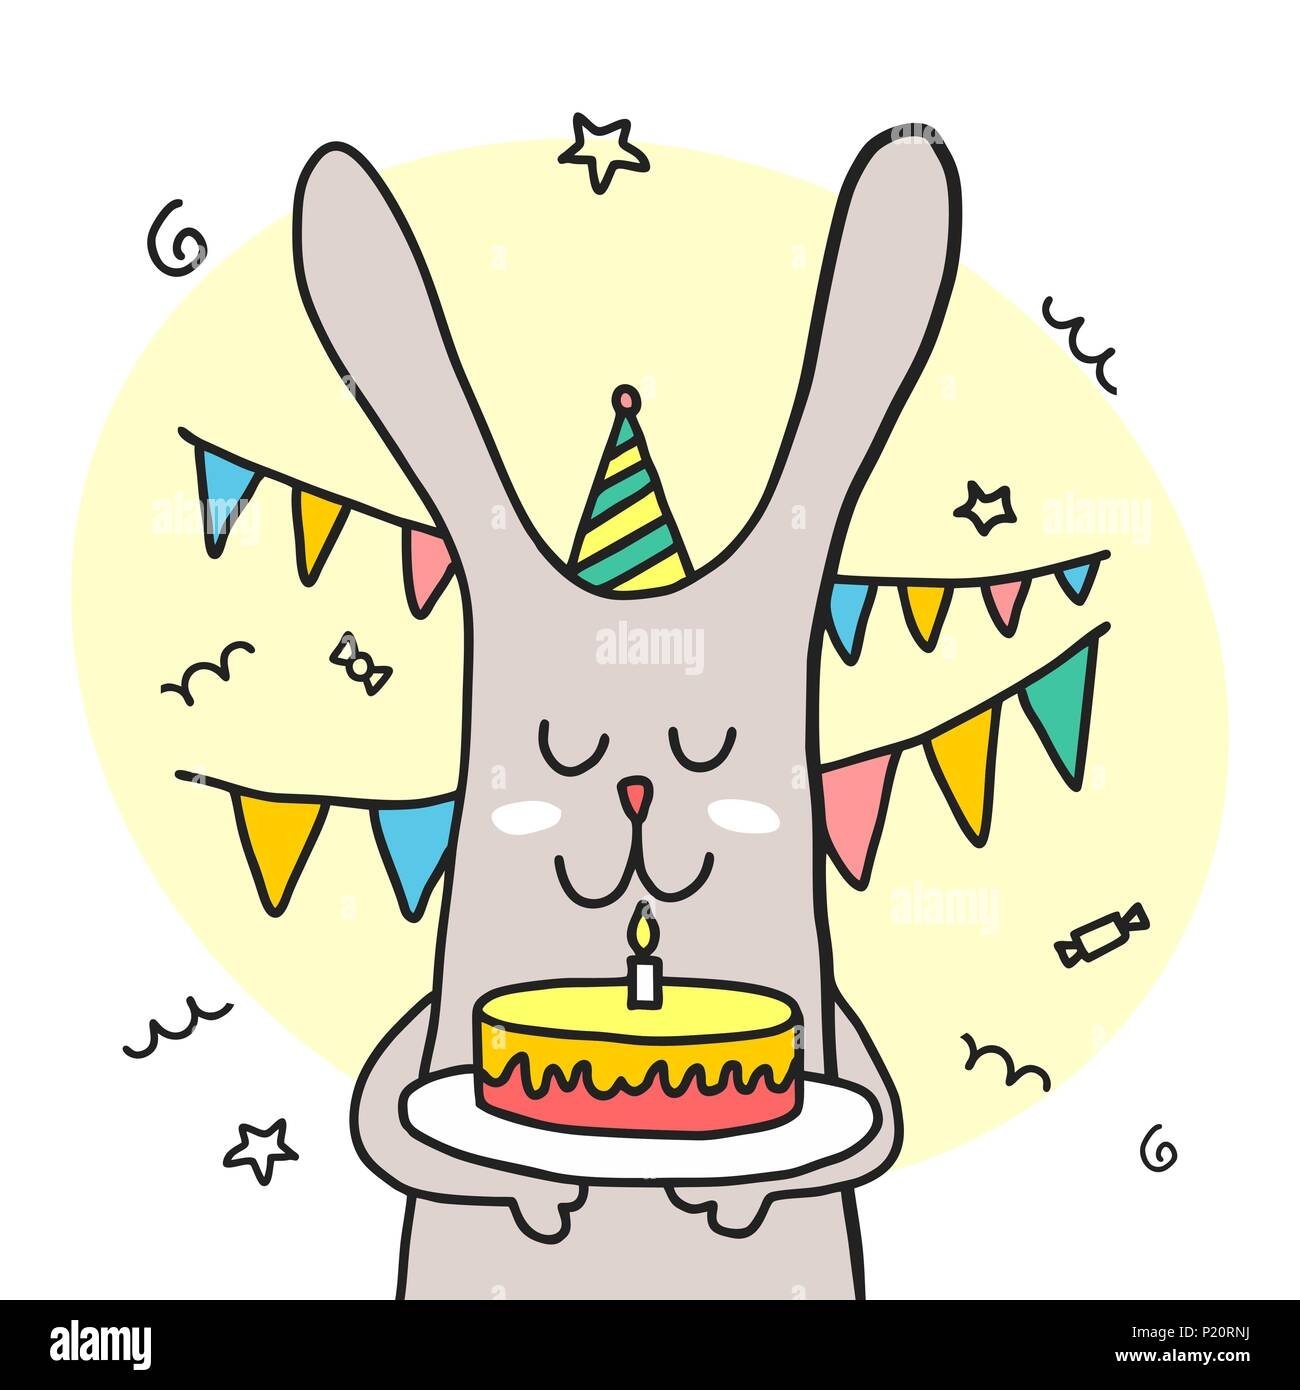 Funny Bunny Halten Happy Birthday Cake Cartoon Bunte Flachbild Vektor Tier Abbildung